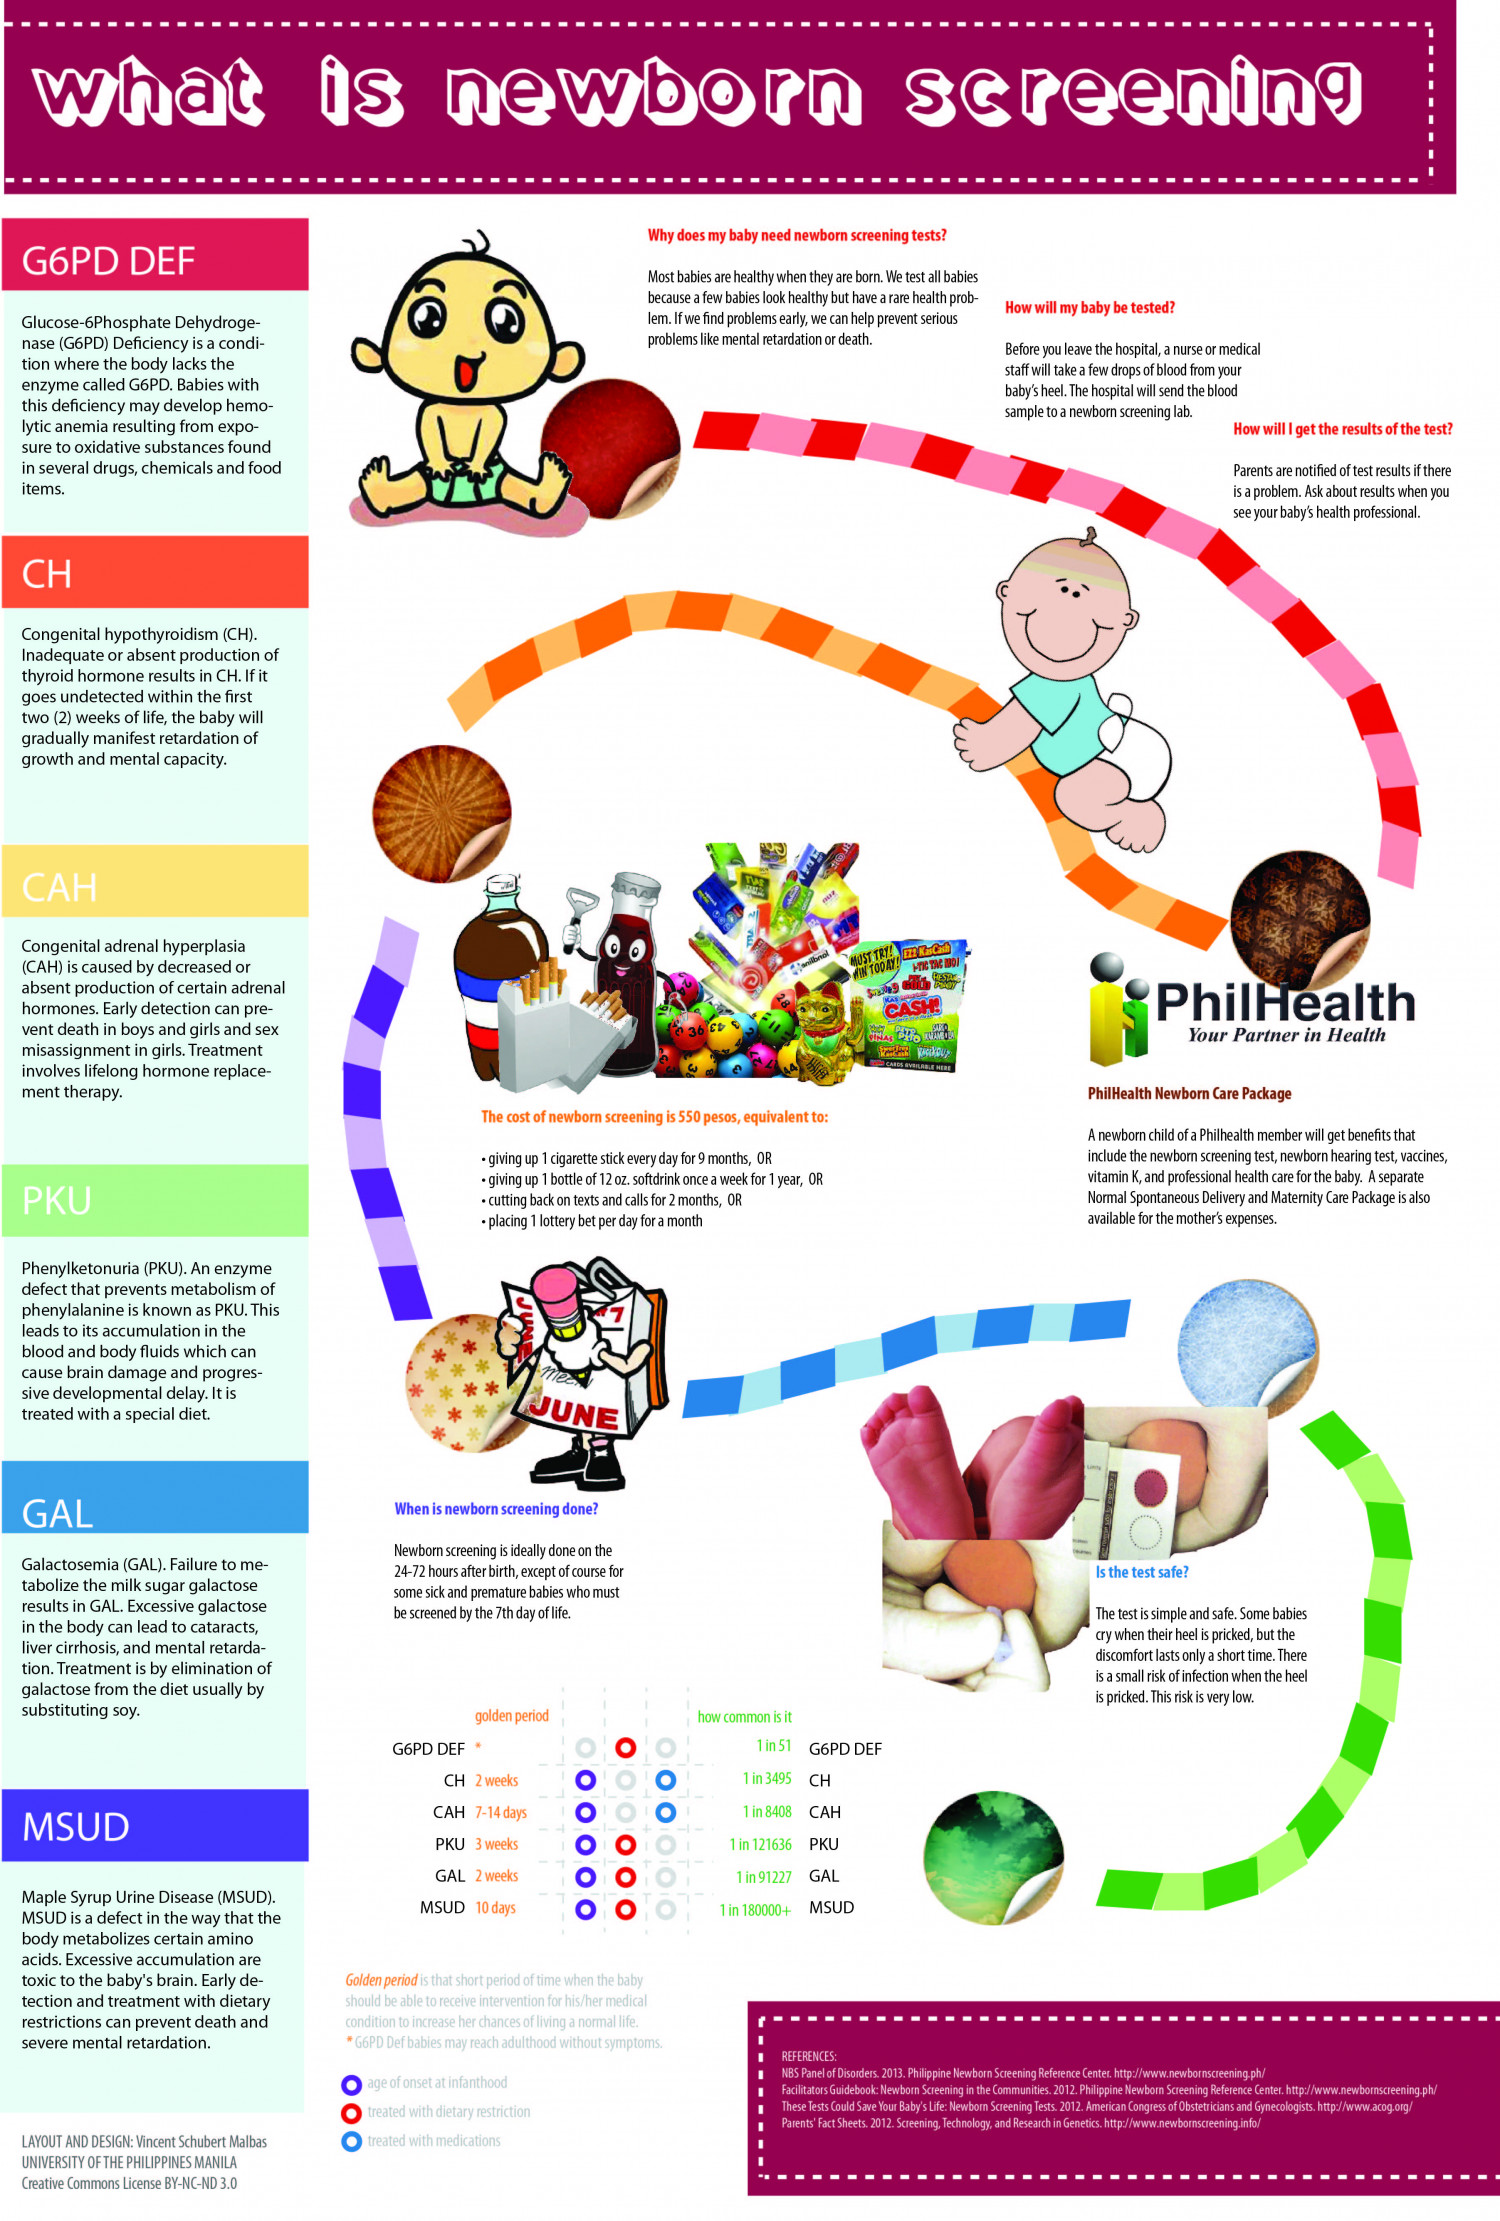 what is newborn screening Infographic